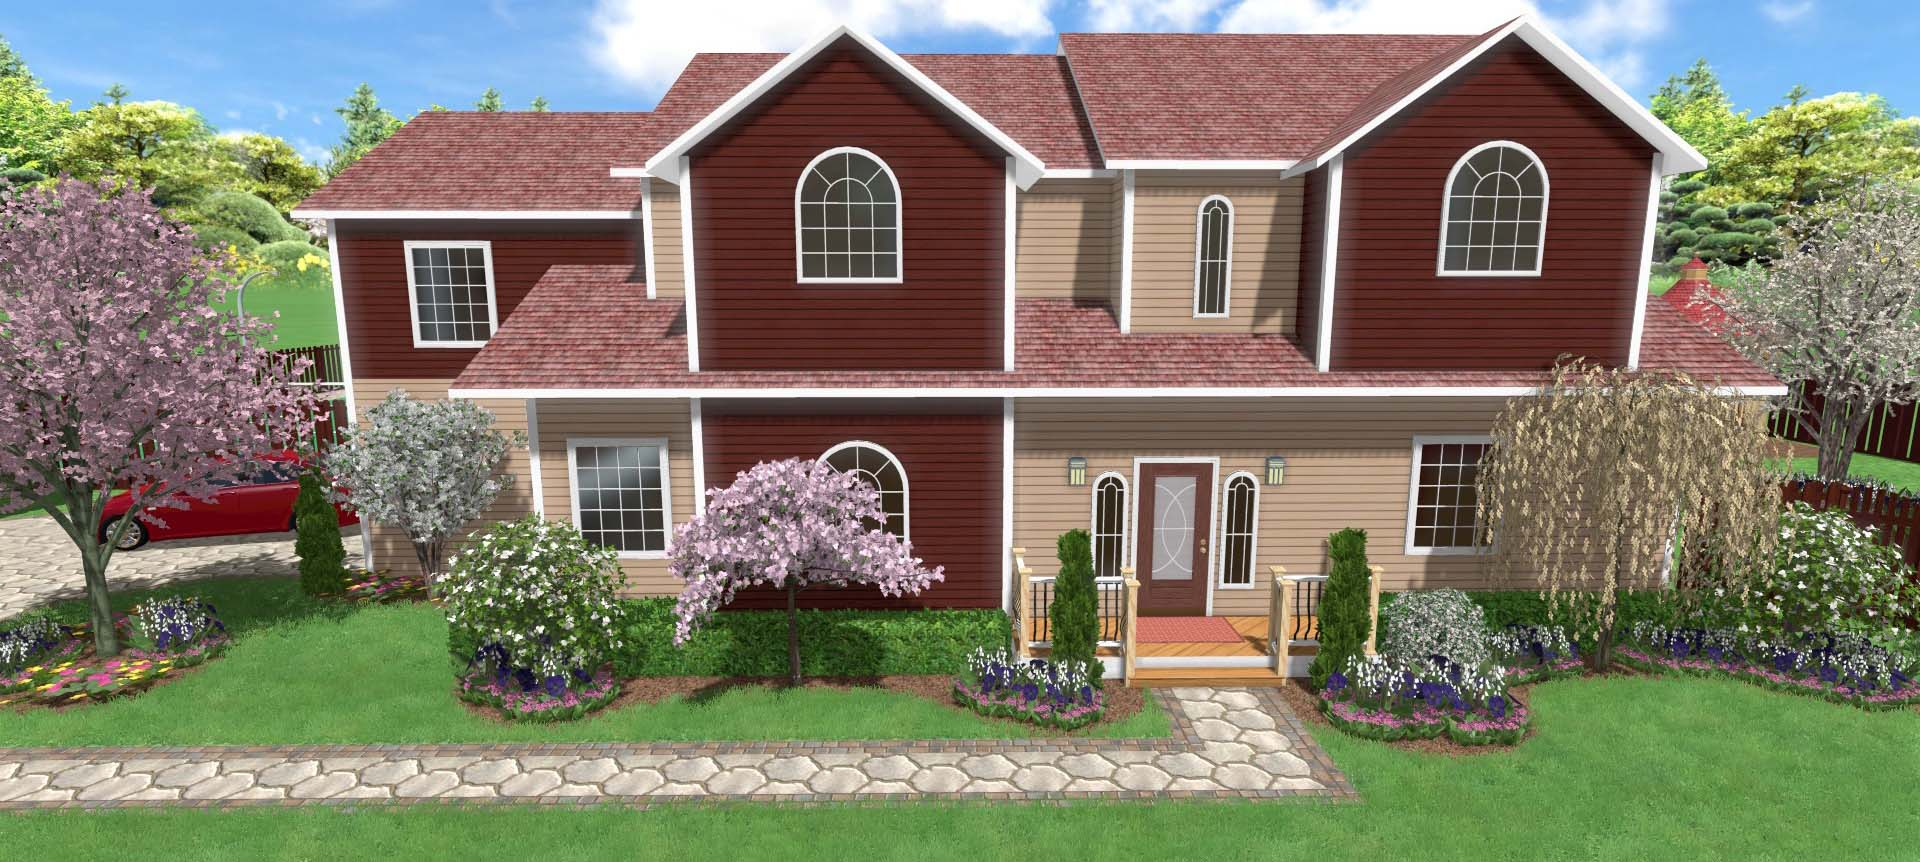 Home landscaping software for Garden design for house